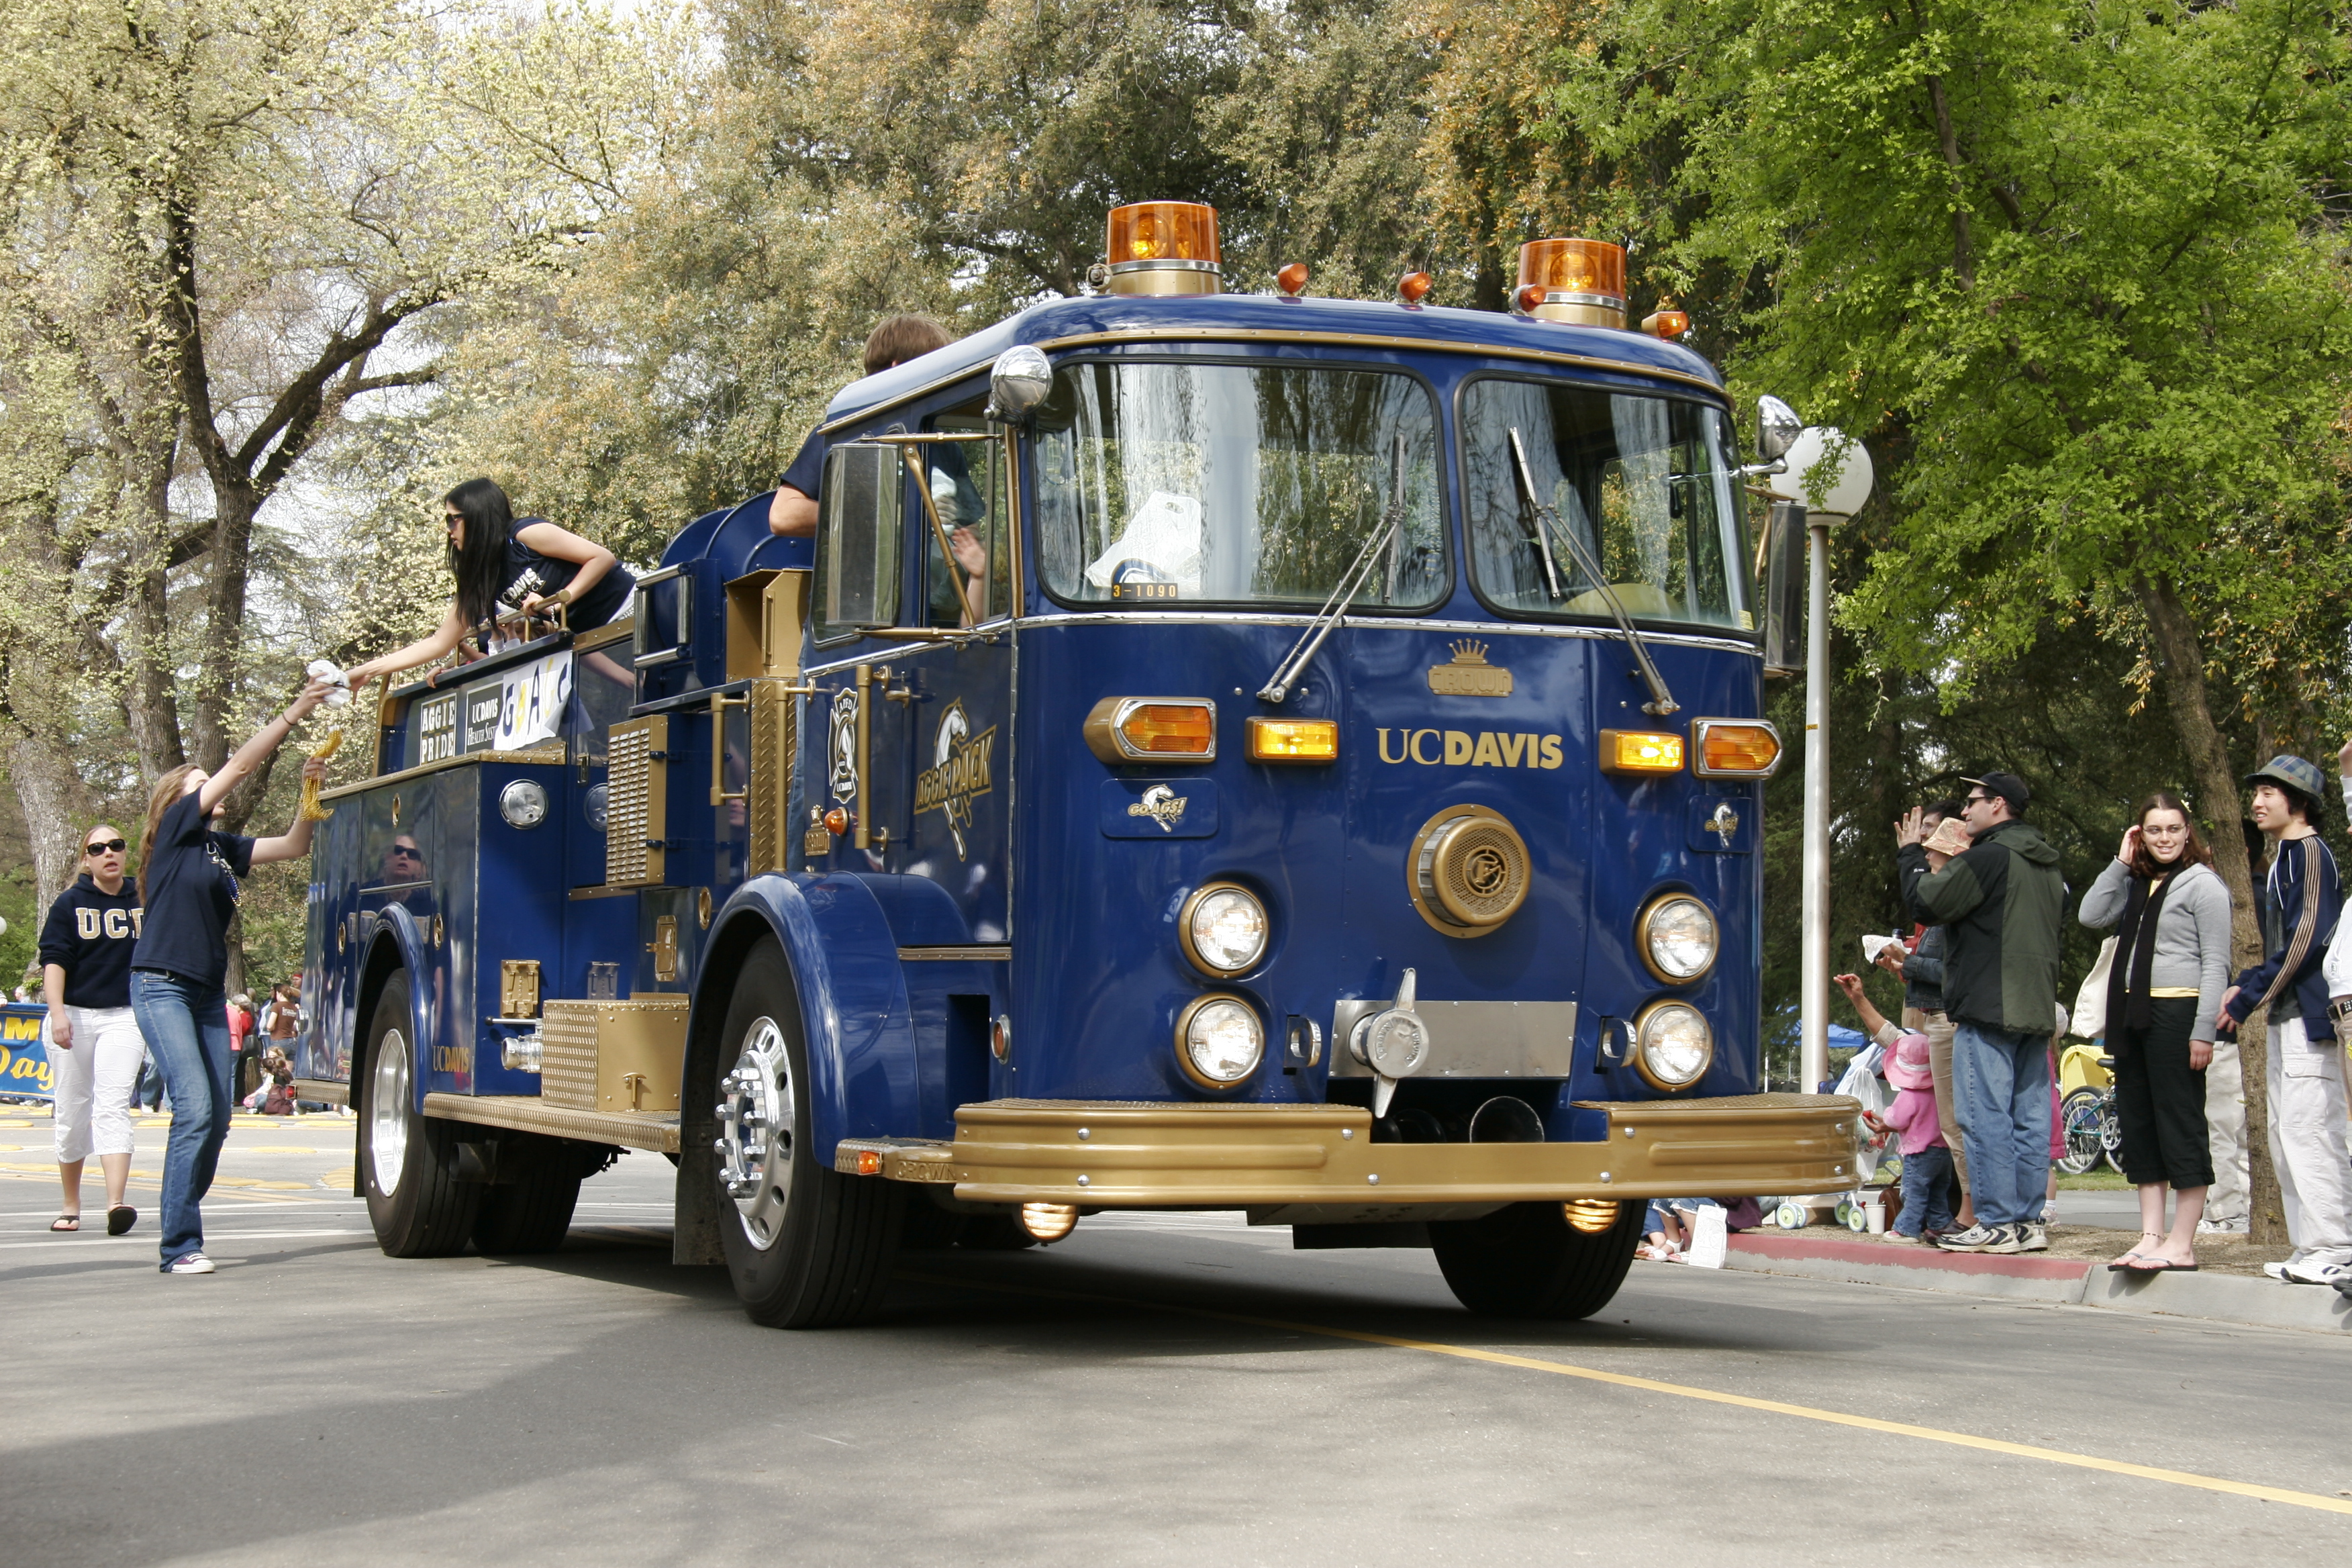 File:Fire Truck, UC DAVIS.jpg - Wikipedia, the free encyclopedia